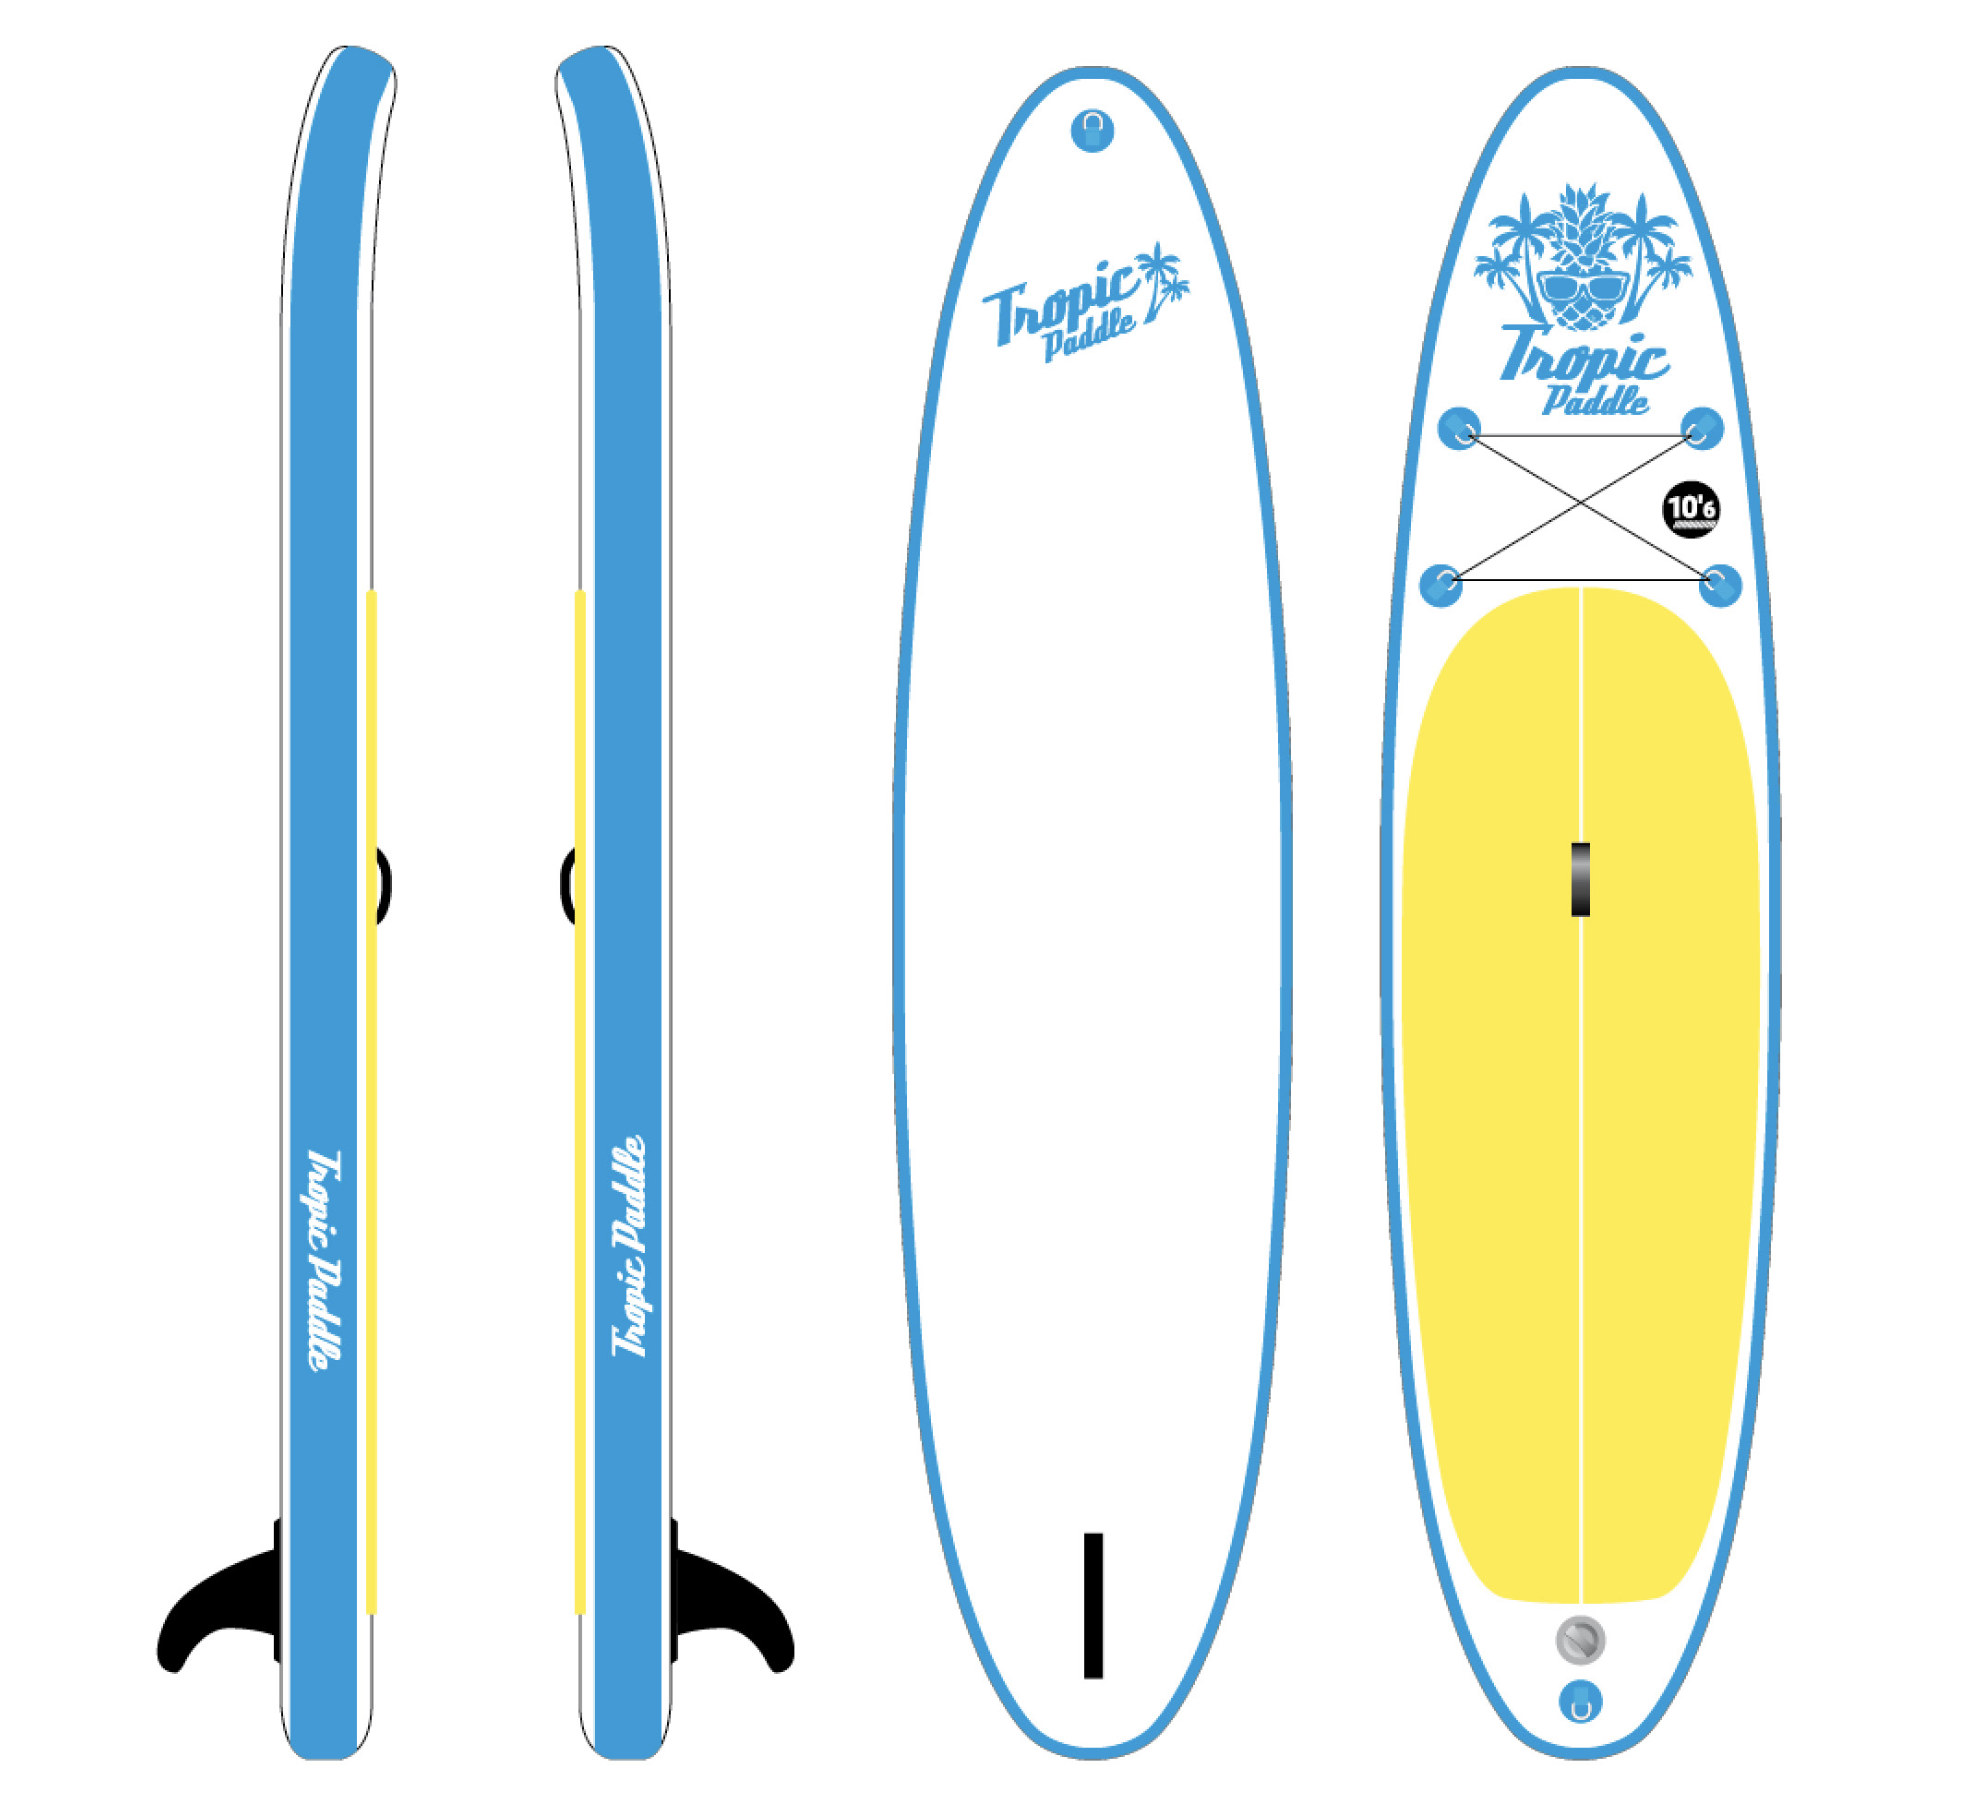 Tropic Paddle Pack 10.6 x 32